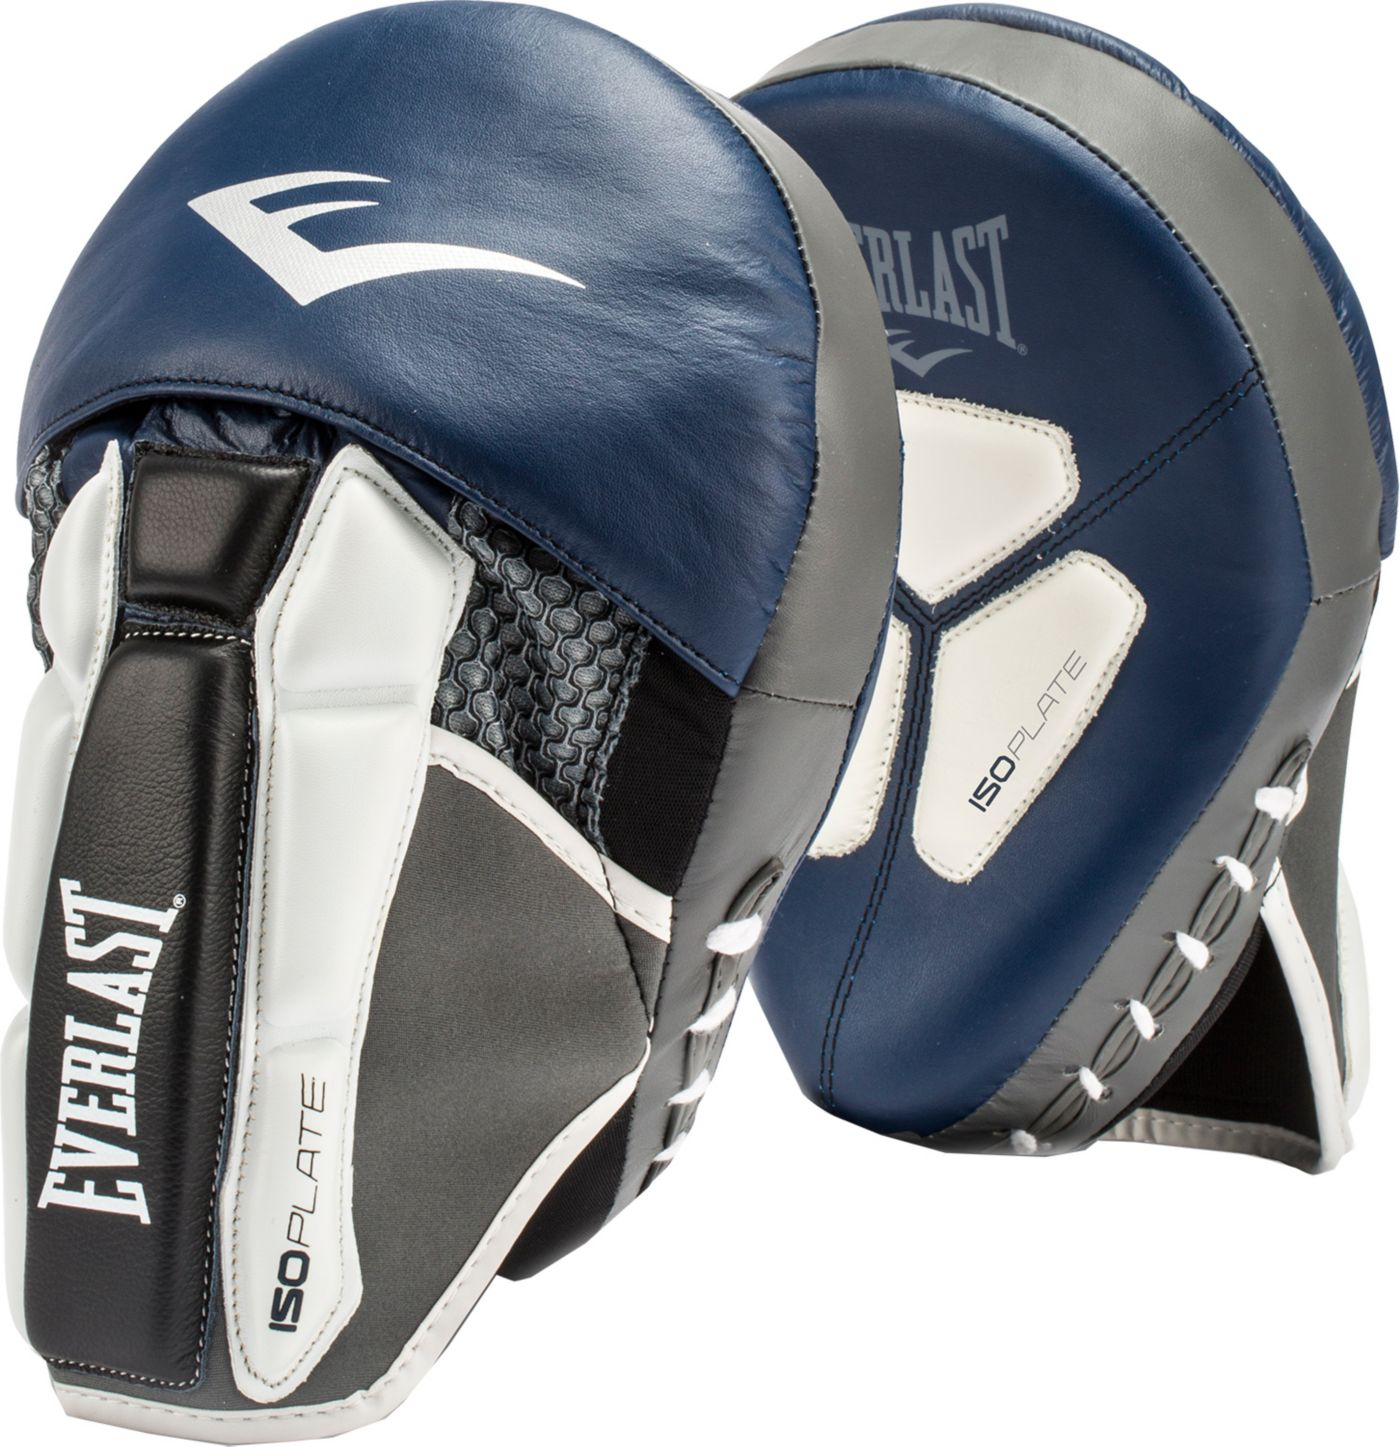 EverlastPrime Mantis Punch Mitts